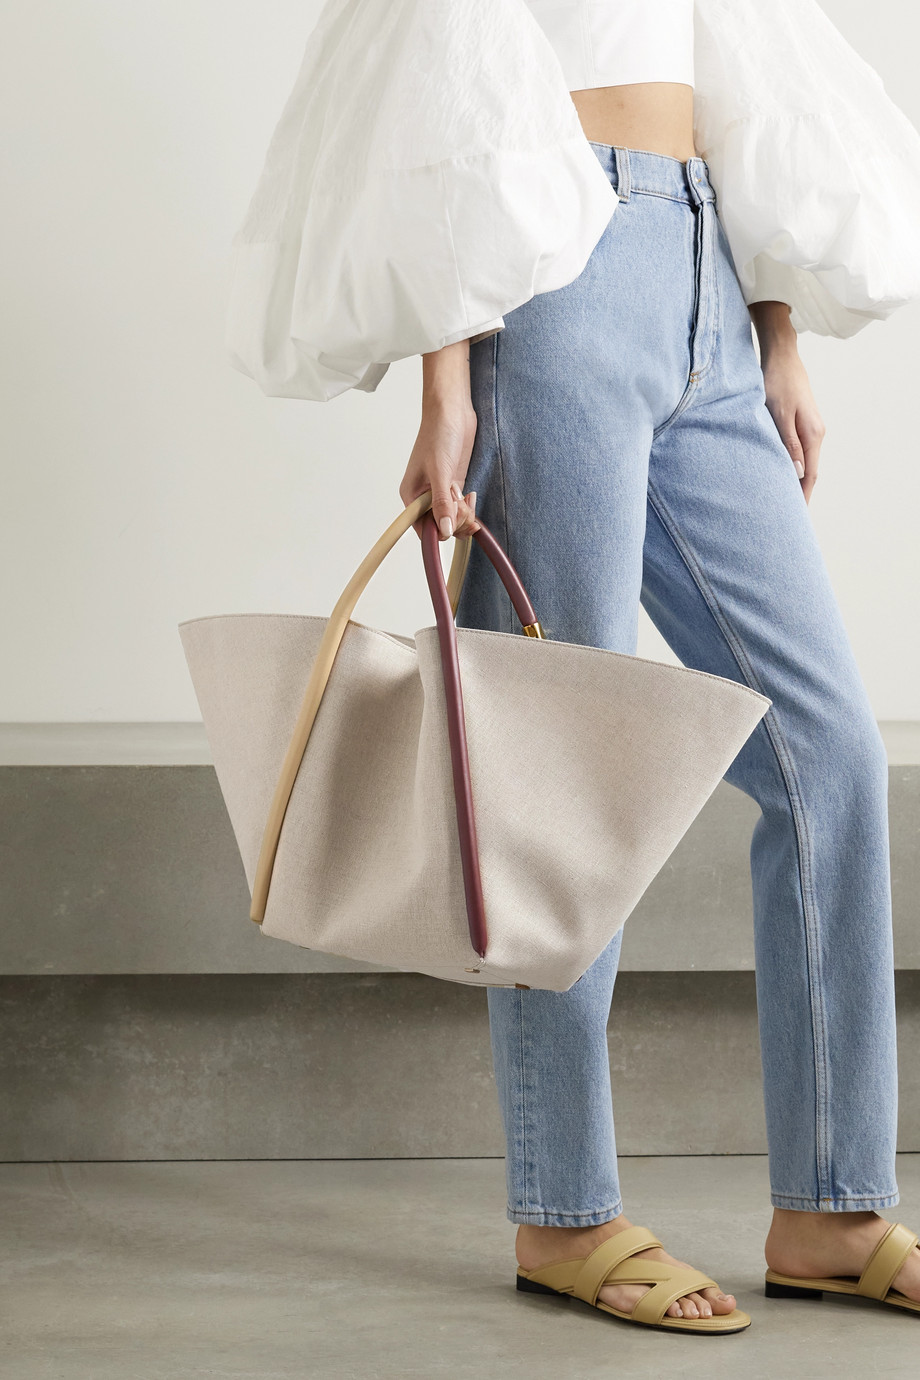 BOYY Lotus 25 leather-trimmed canvas tote